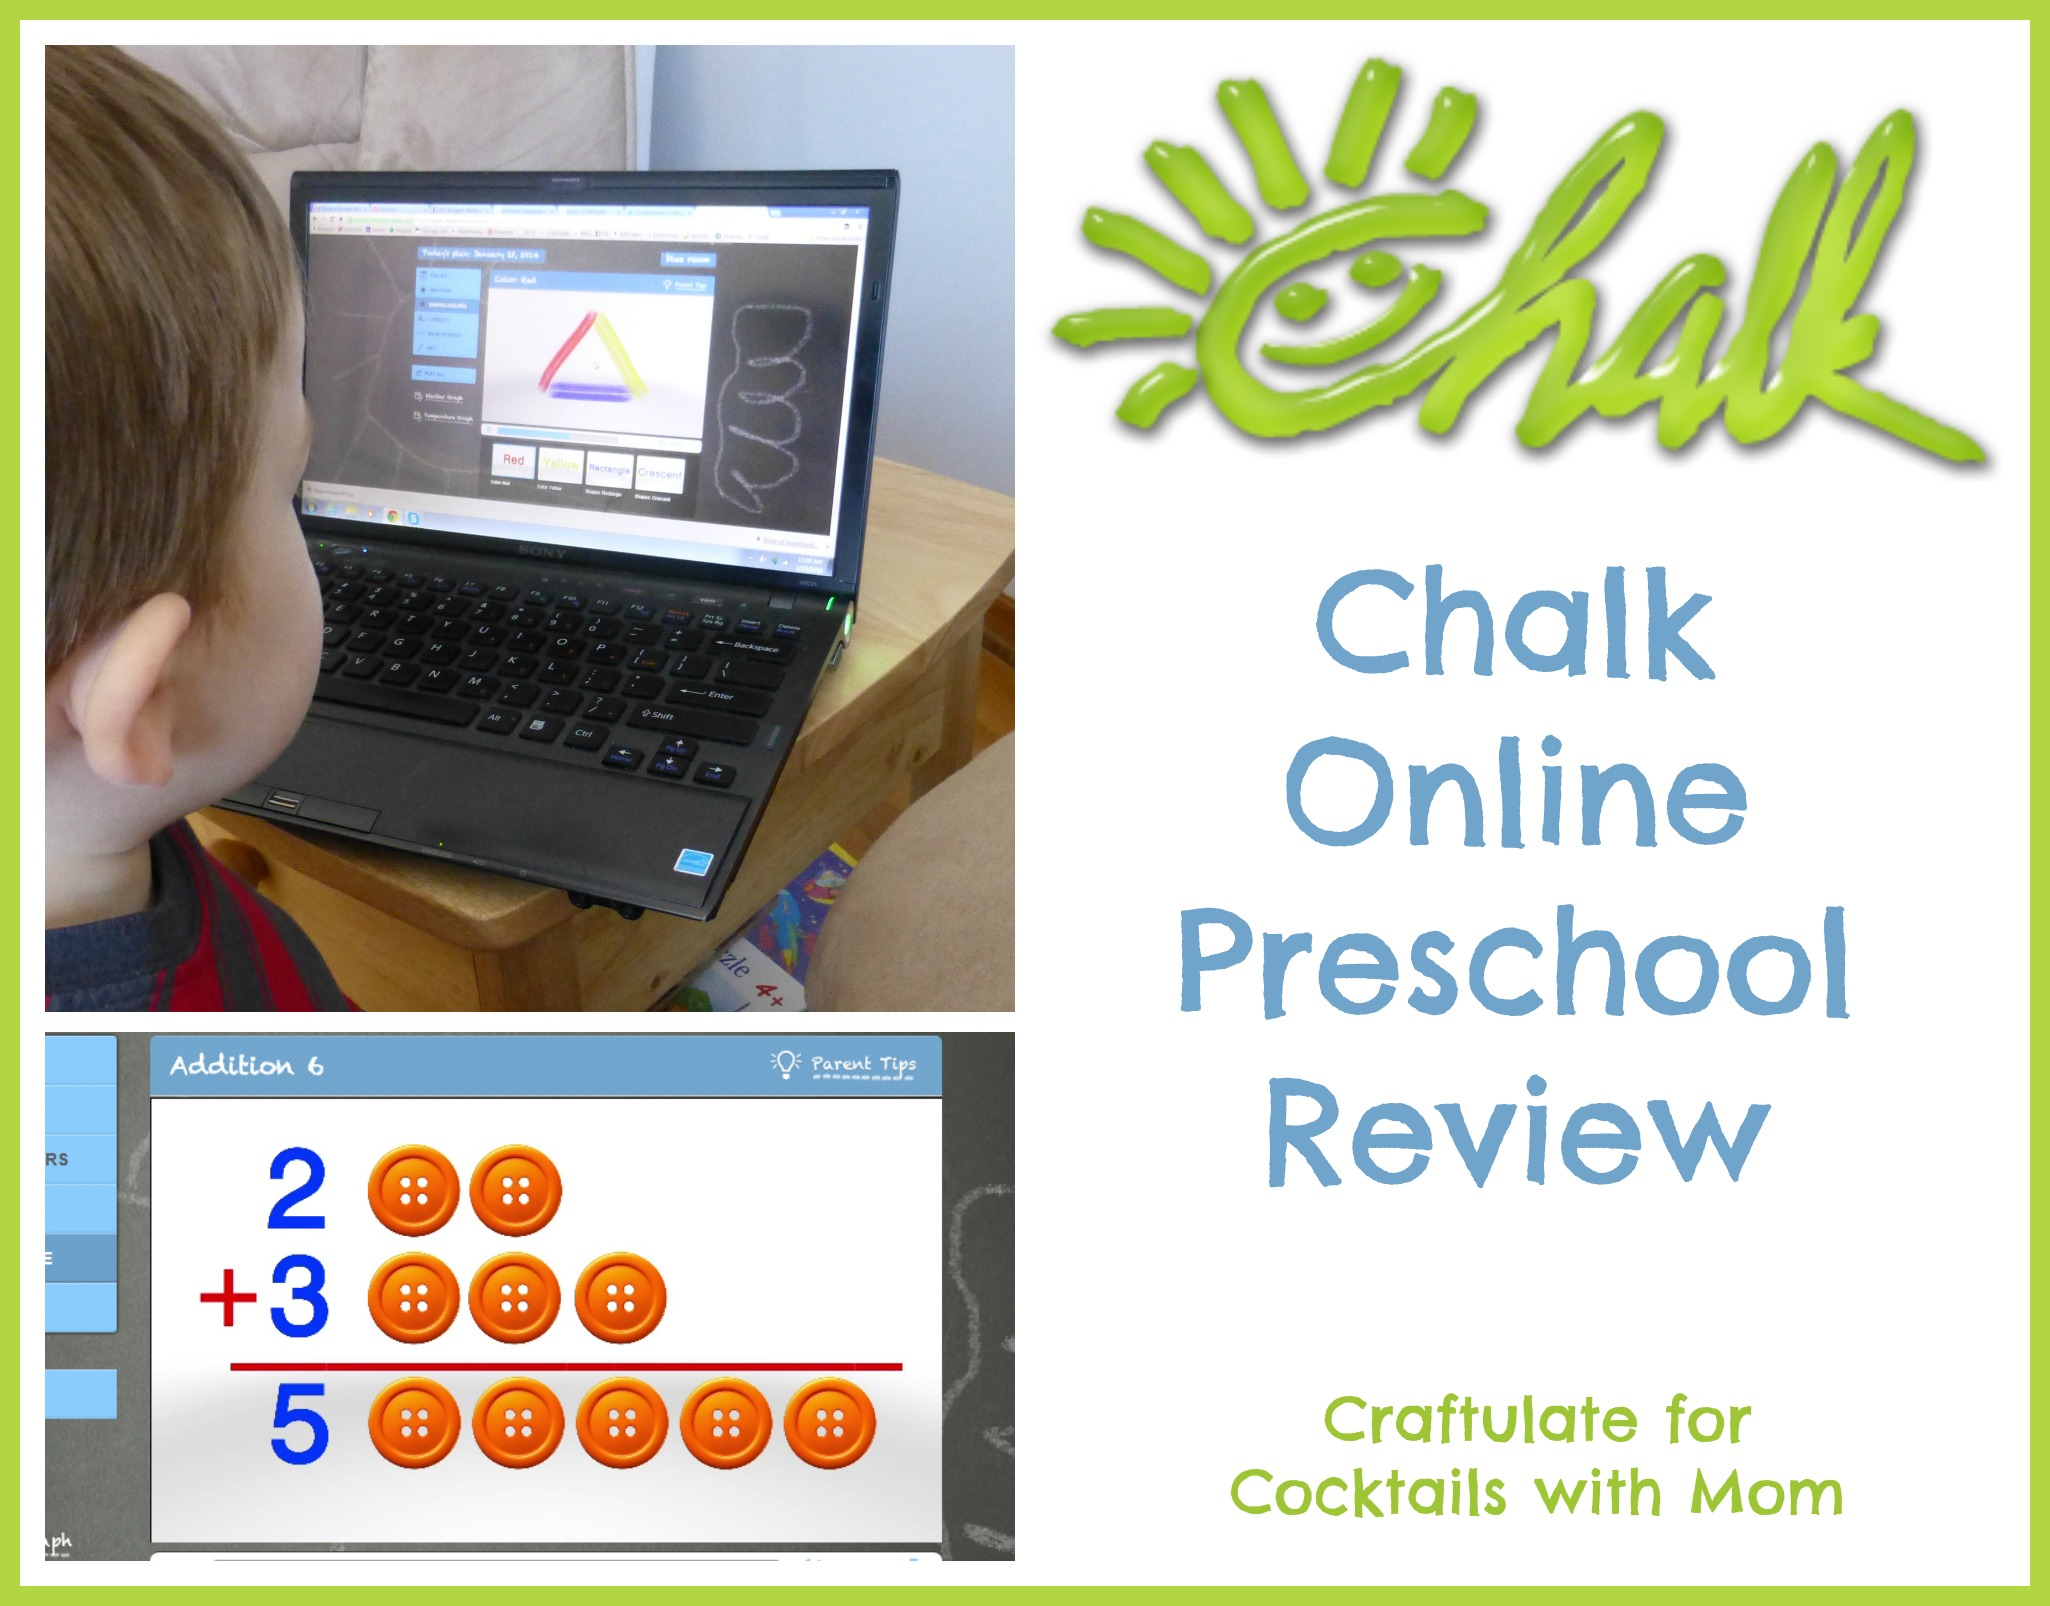 Chalk Online Preschool Review